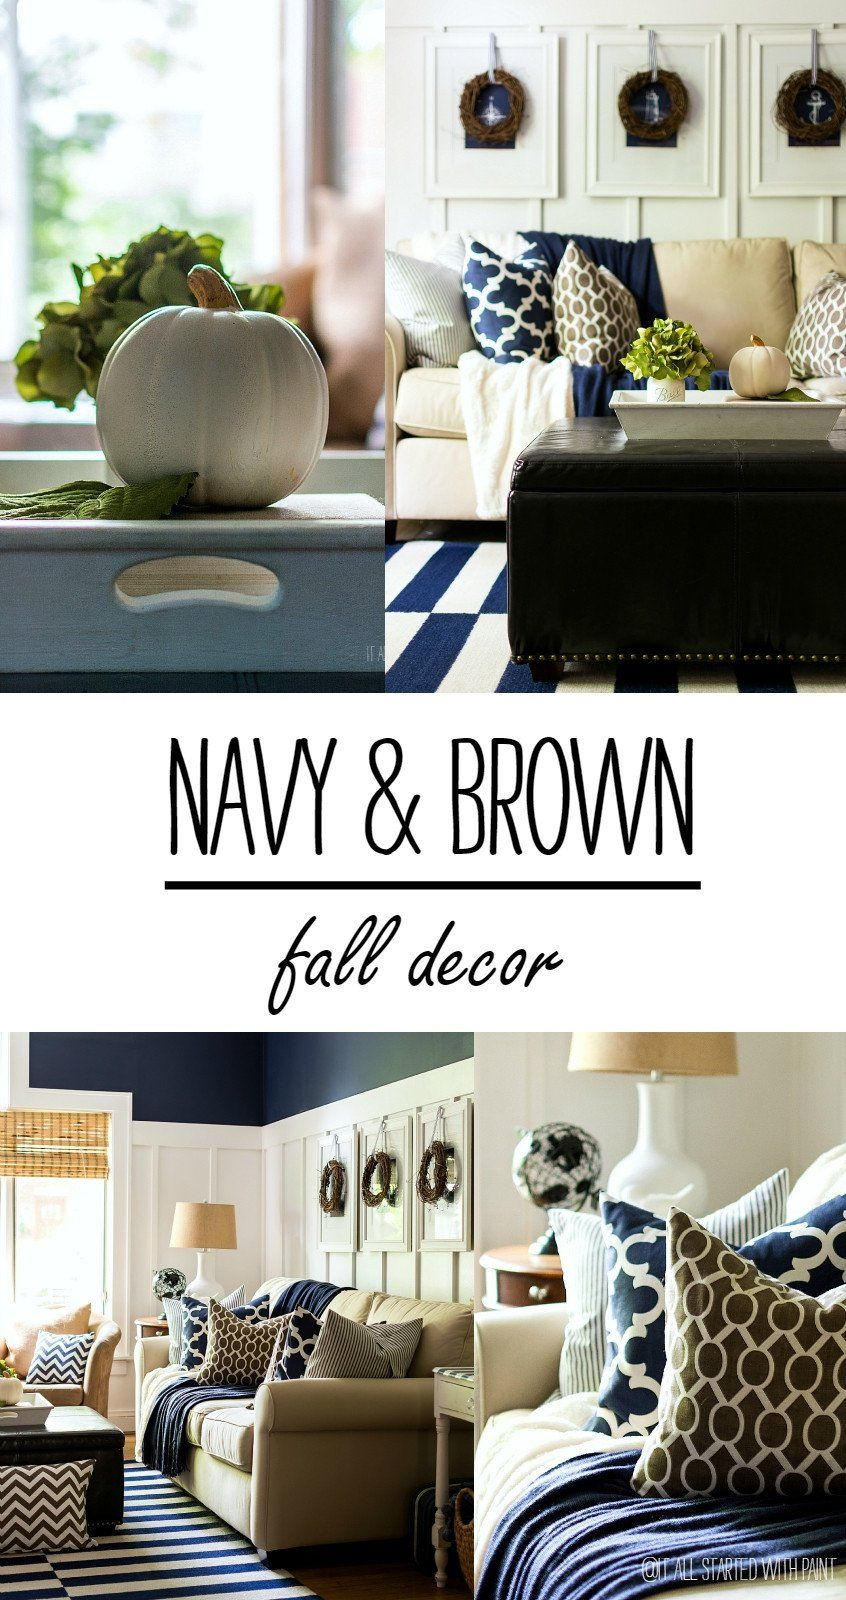 Blue And Brown Home Decor Fall Decor In Navy And Blue Brown And Blue Living Room Home Decor Blue Living Room